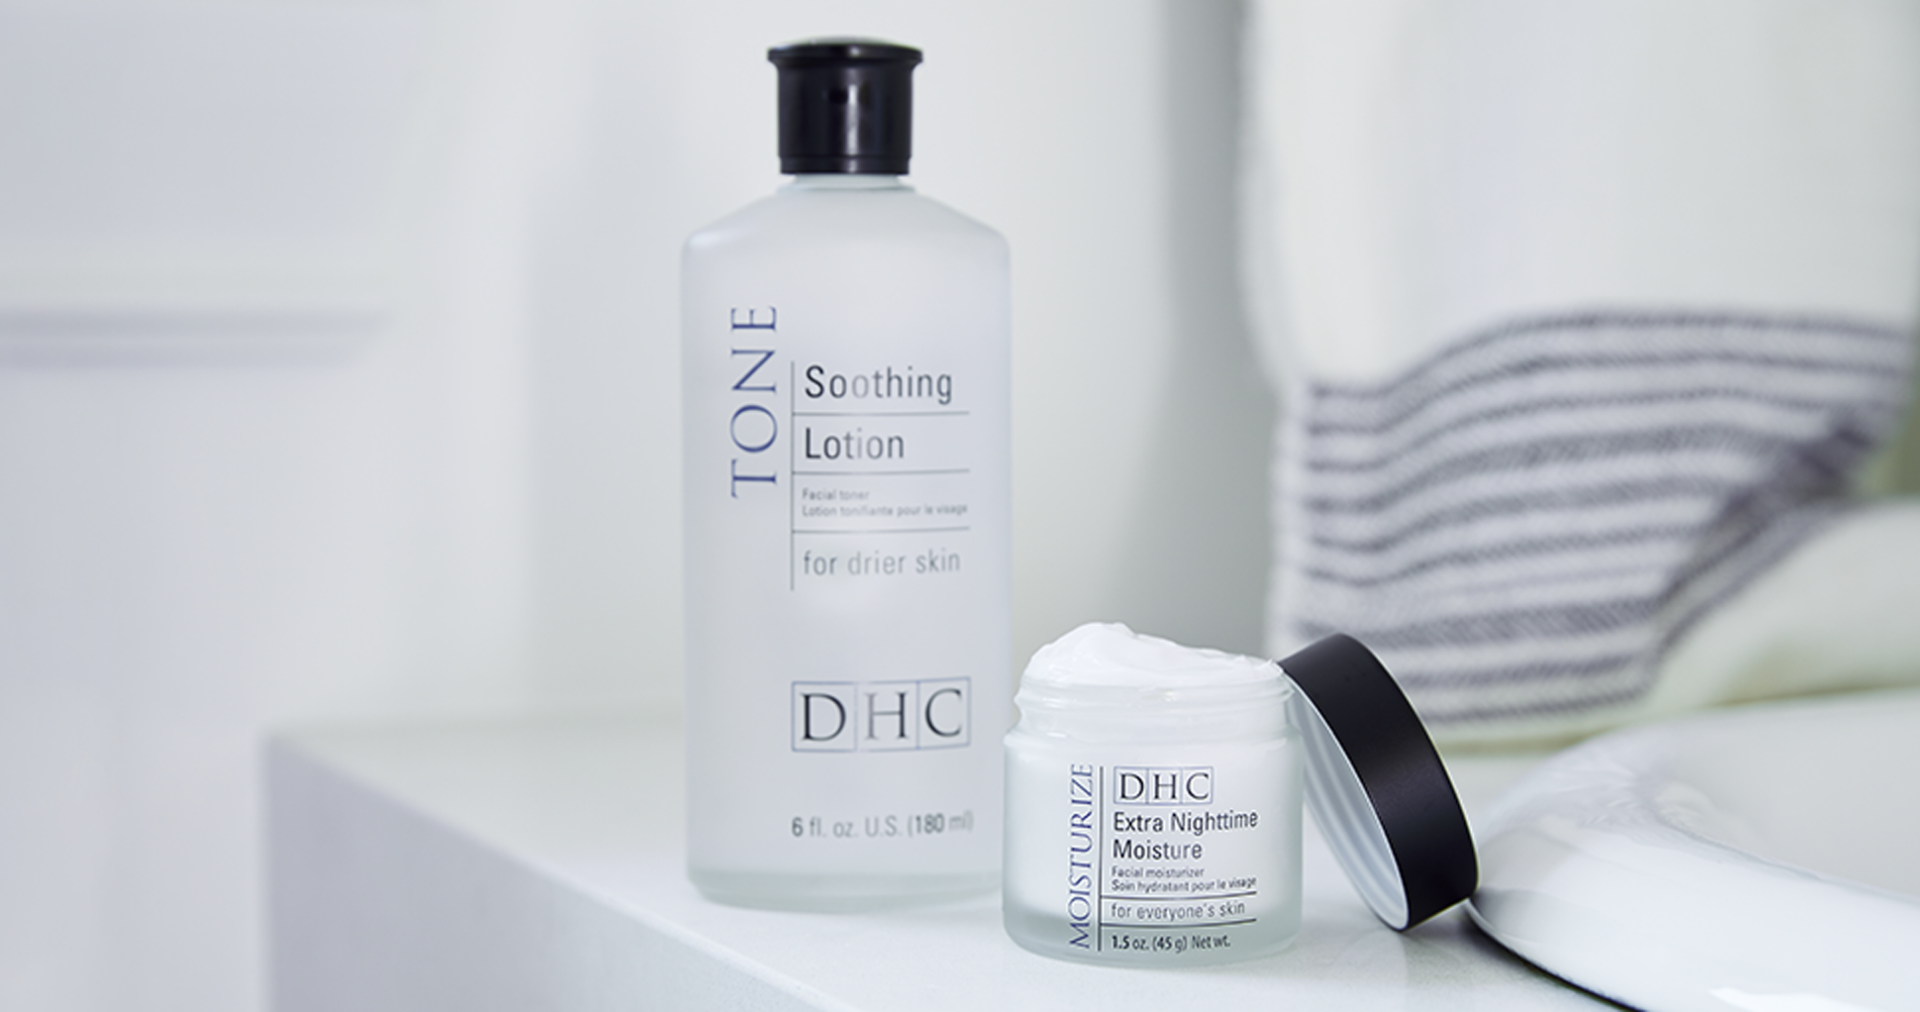 Double Moisture Skincare Set from DHC